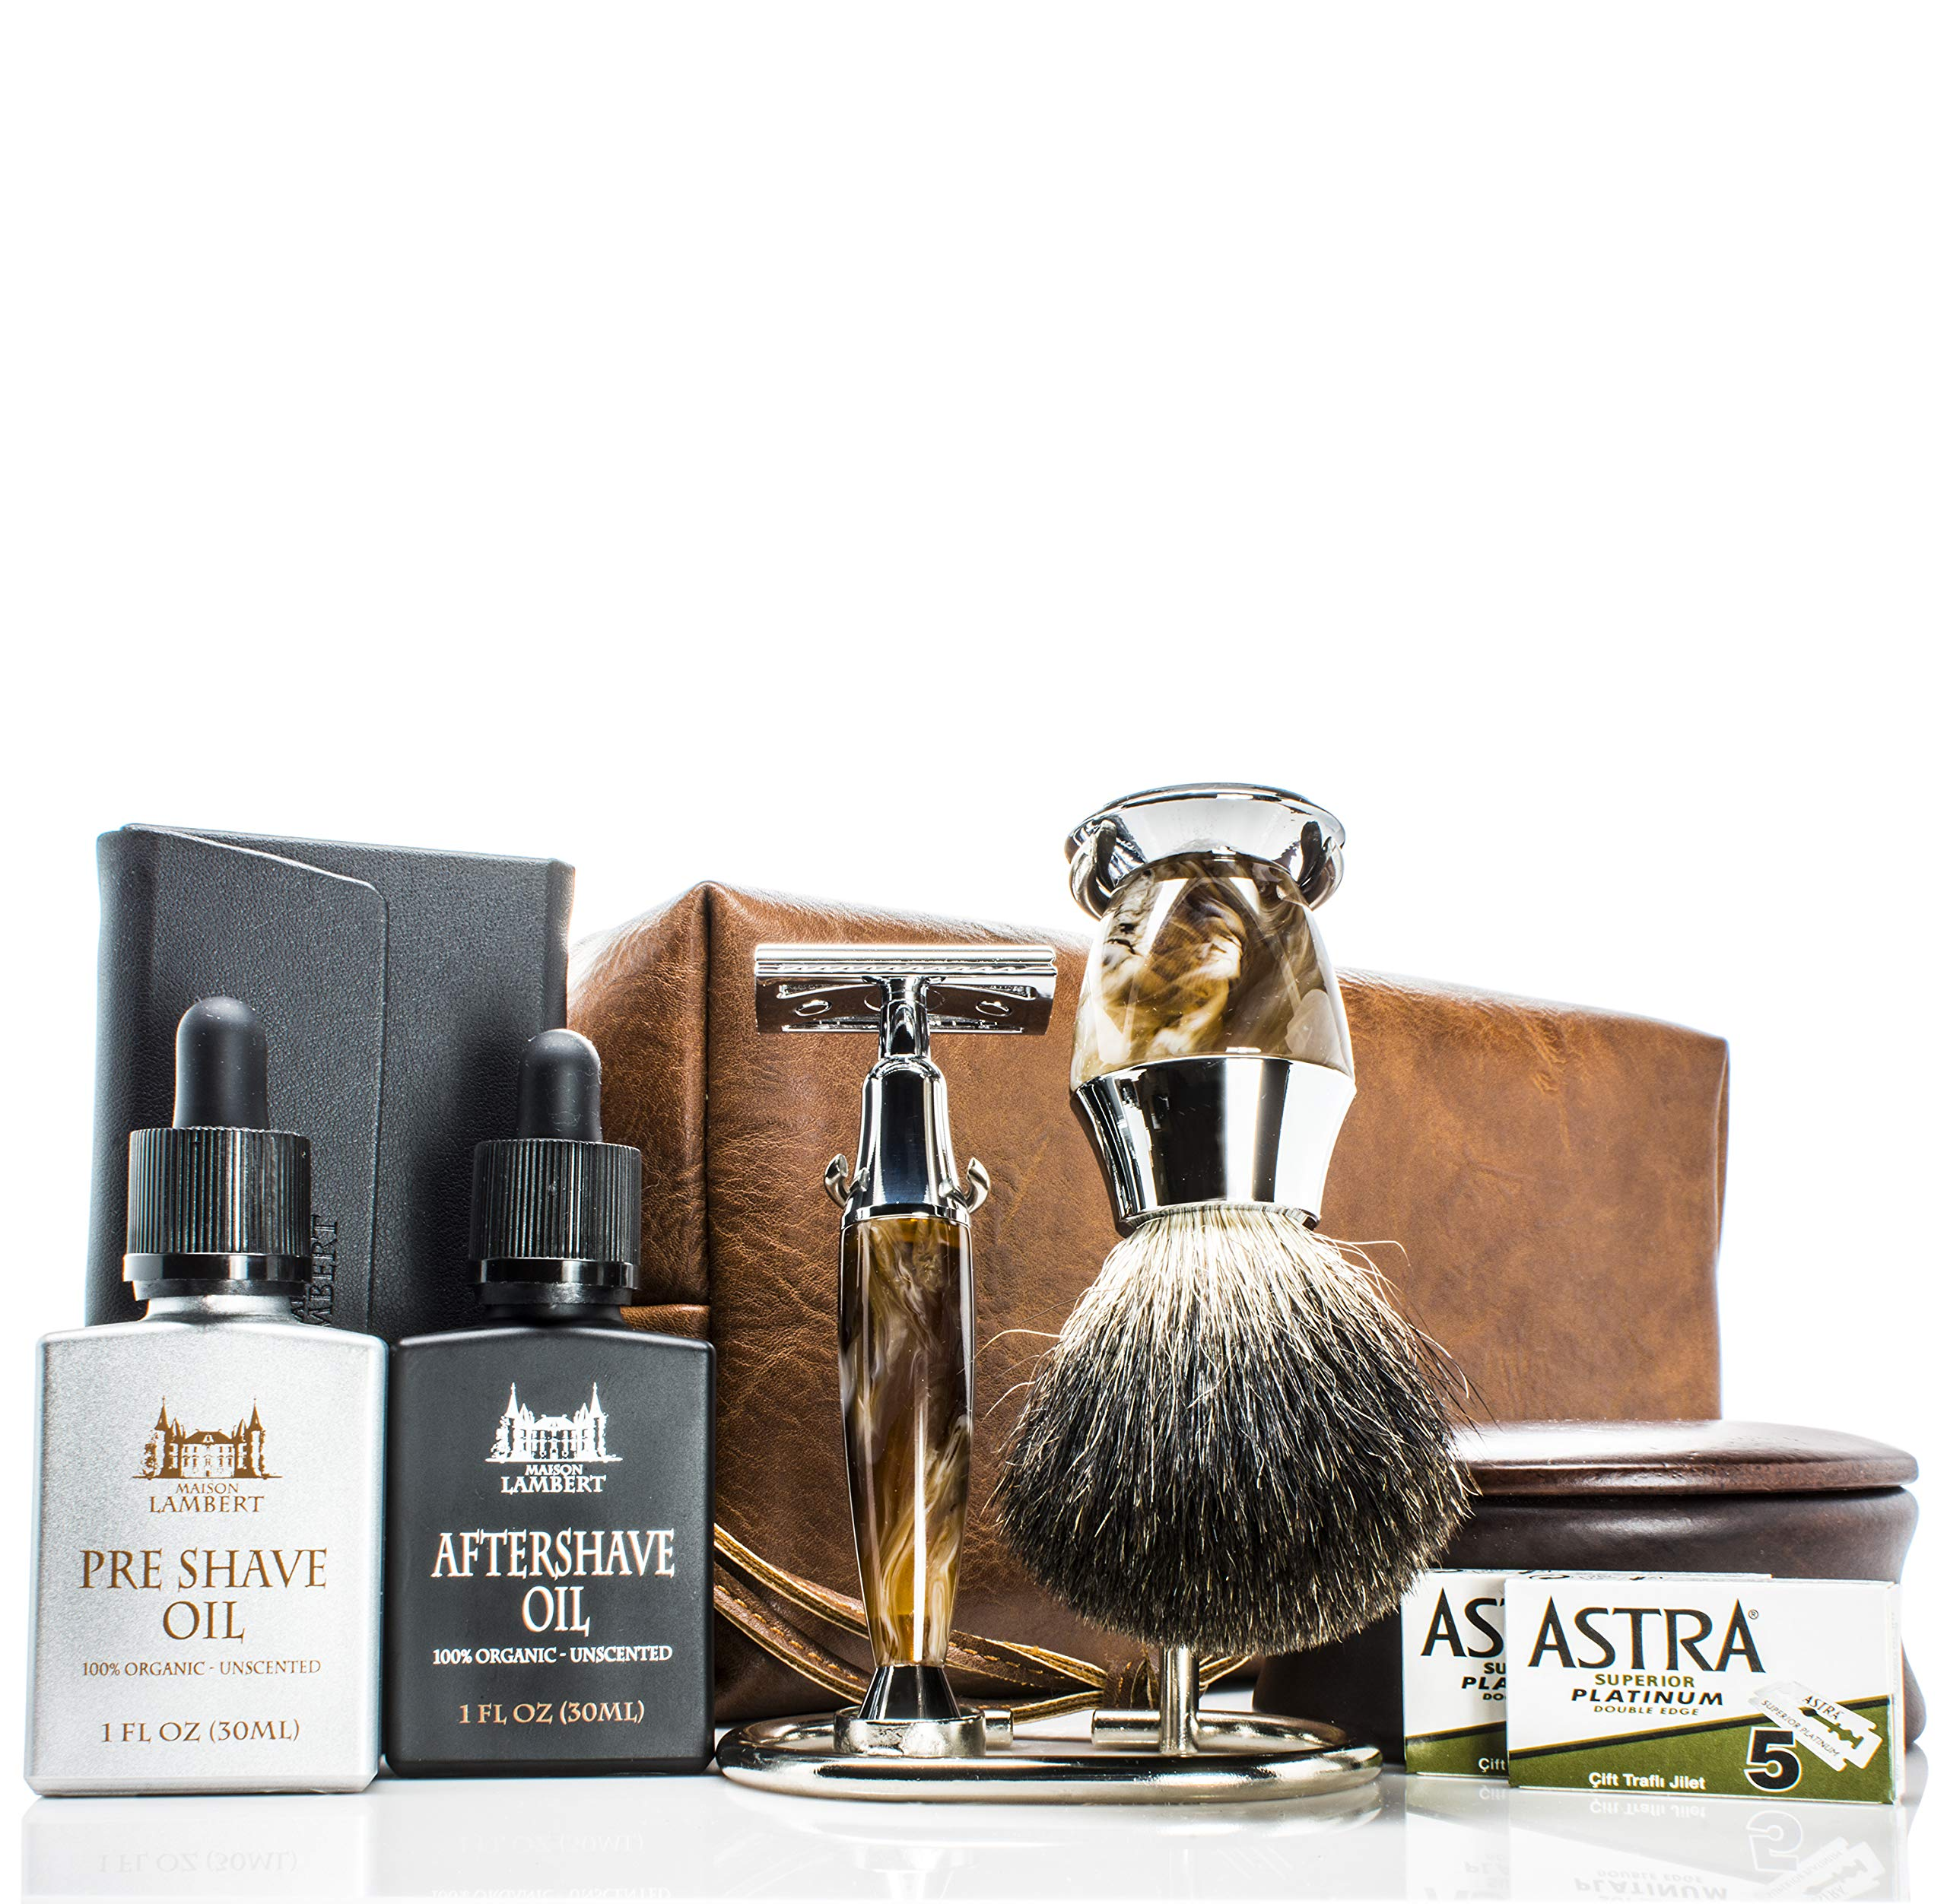 Maison Lambert Ultimate Shaving Kit Set with Organic Shaving Soap, Aftershave oil, Wood Shaving Bowl, 100% Pure Black Badger Shaving Brush and Double Edge Safety Razor and stand. Best fathers day gift by Maison Lambert